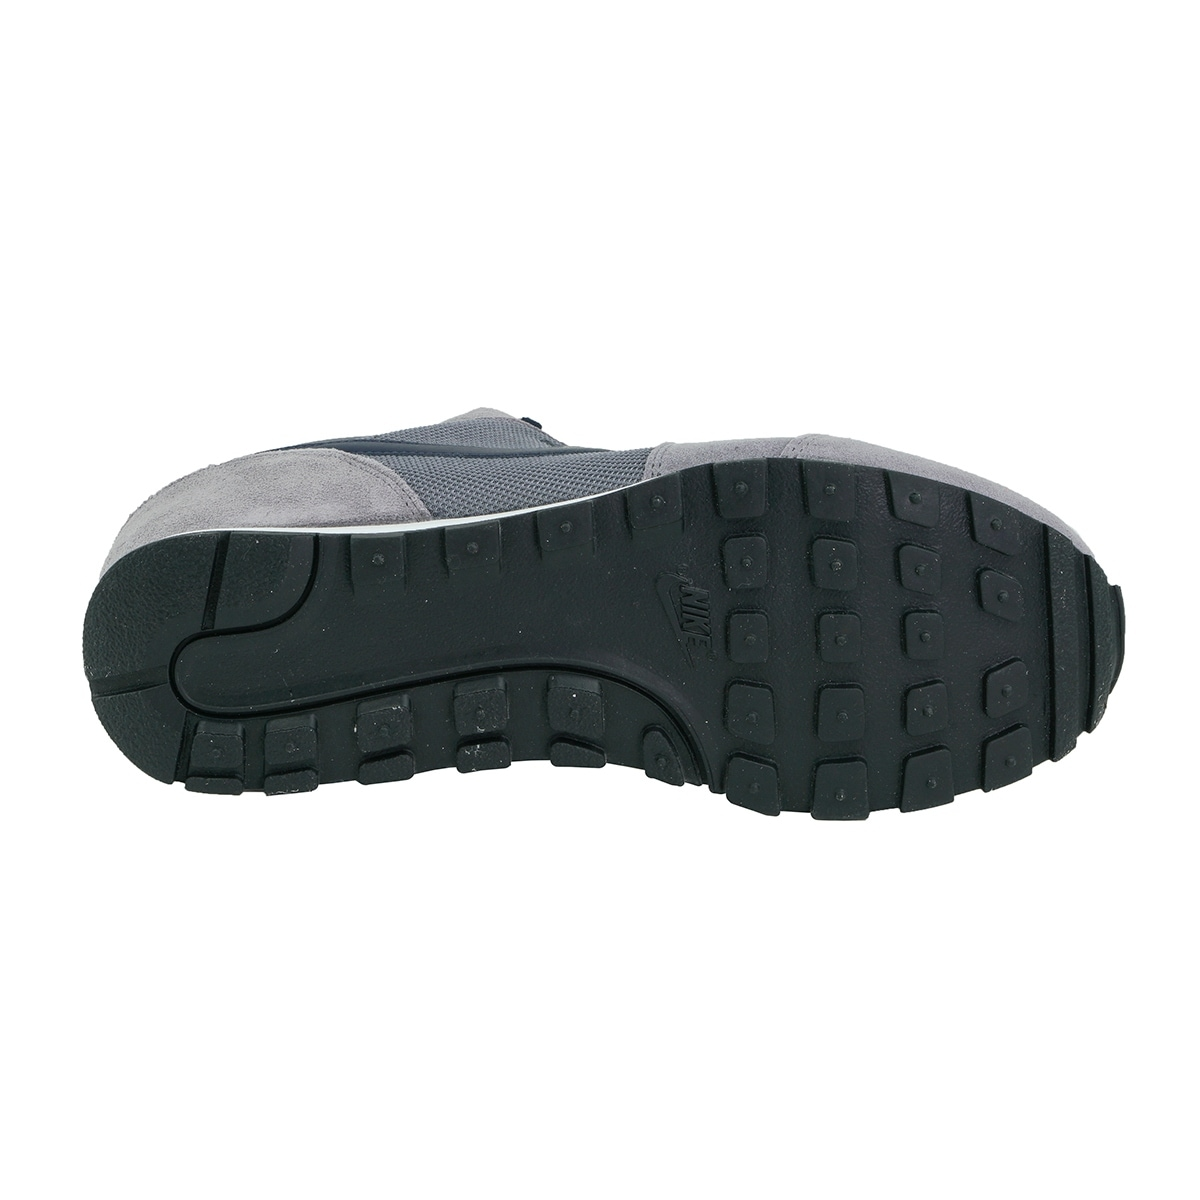 865f6afbab9 Shop Nike Men s MD Runner 2 Shoes - Free Shipping Today - Overstock -  25773244